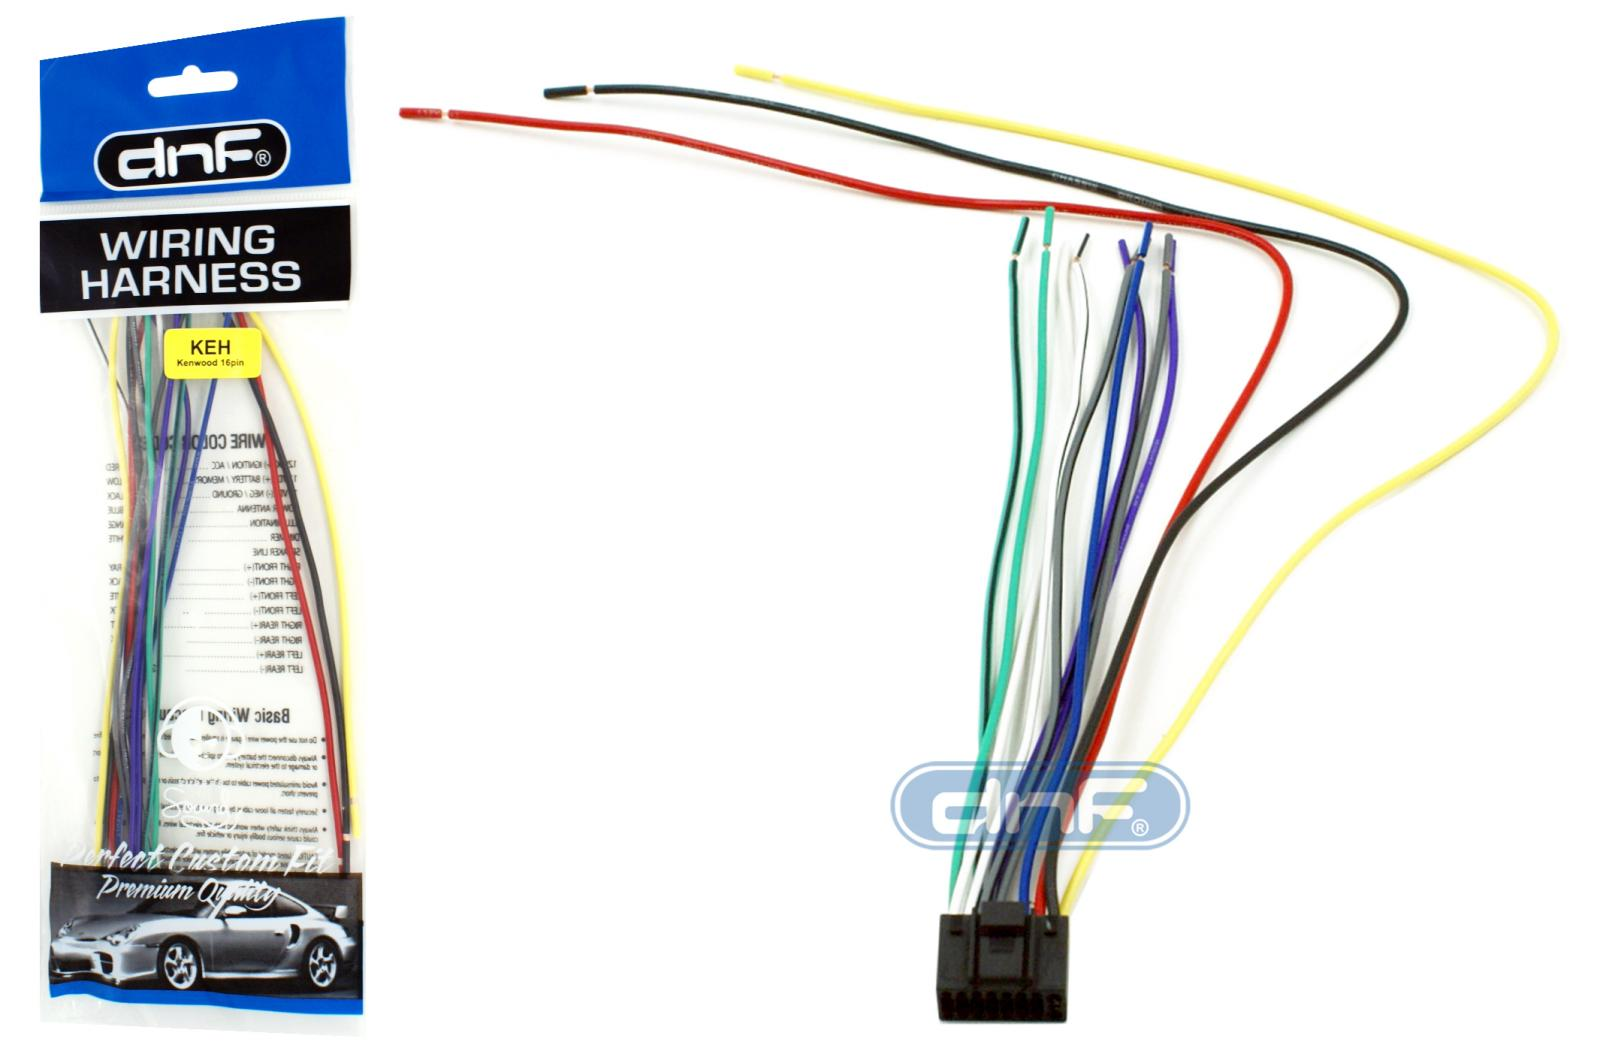 Mitsubishi Wiring Harness Diagrams Connectors Wd 60735 Wire From Ballast To Lamp 53 Outlander Trailer Car Stereo